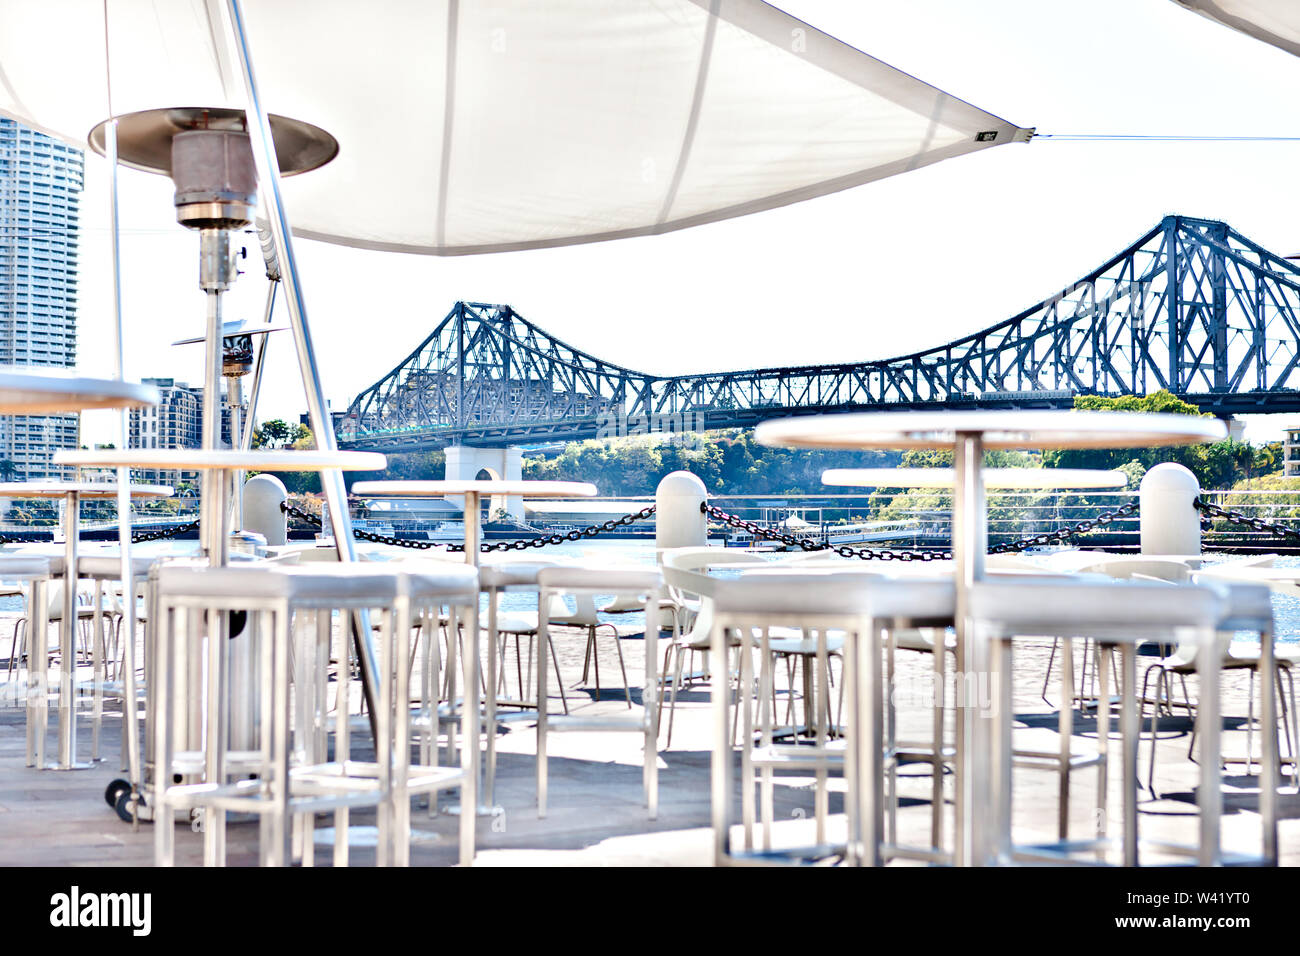 An outside relaxation area with a long bridge from the background, including white chairs and tables that covered with tent beside river in a sunny da - Stock Image